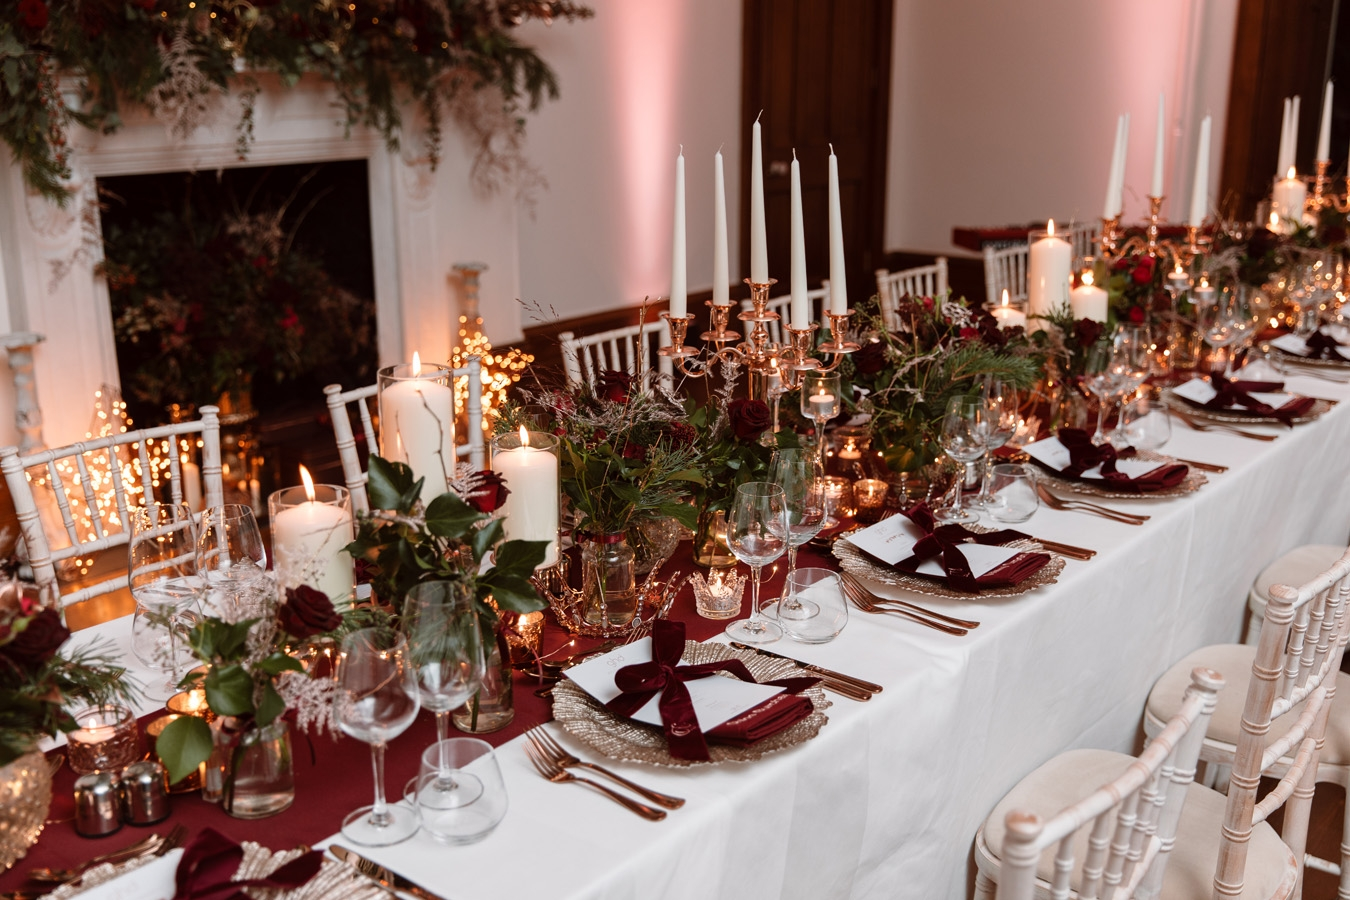 Festive Table Set-up